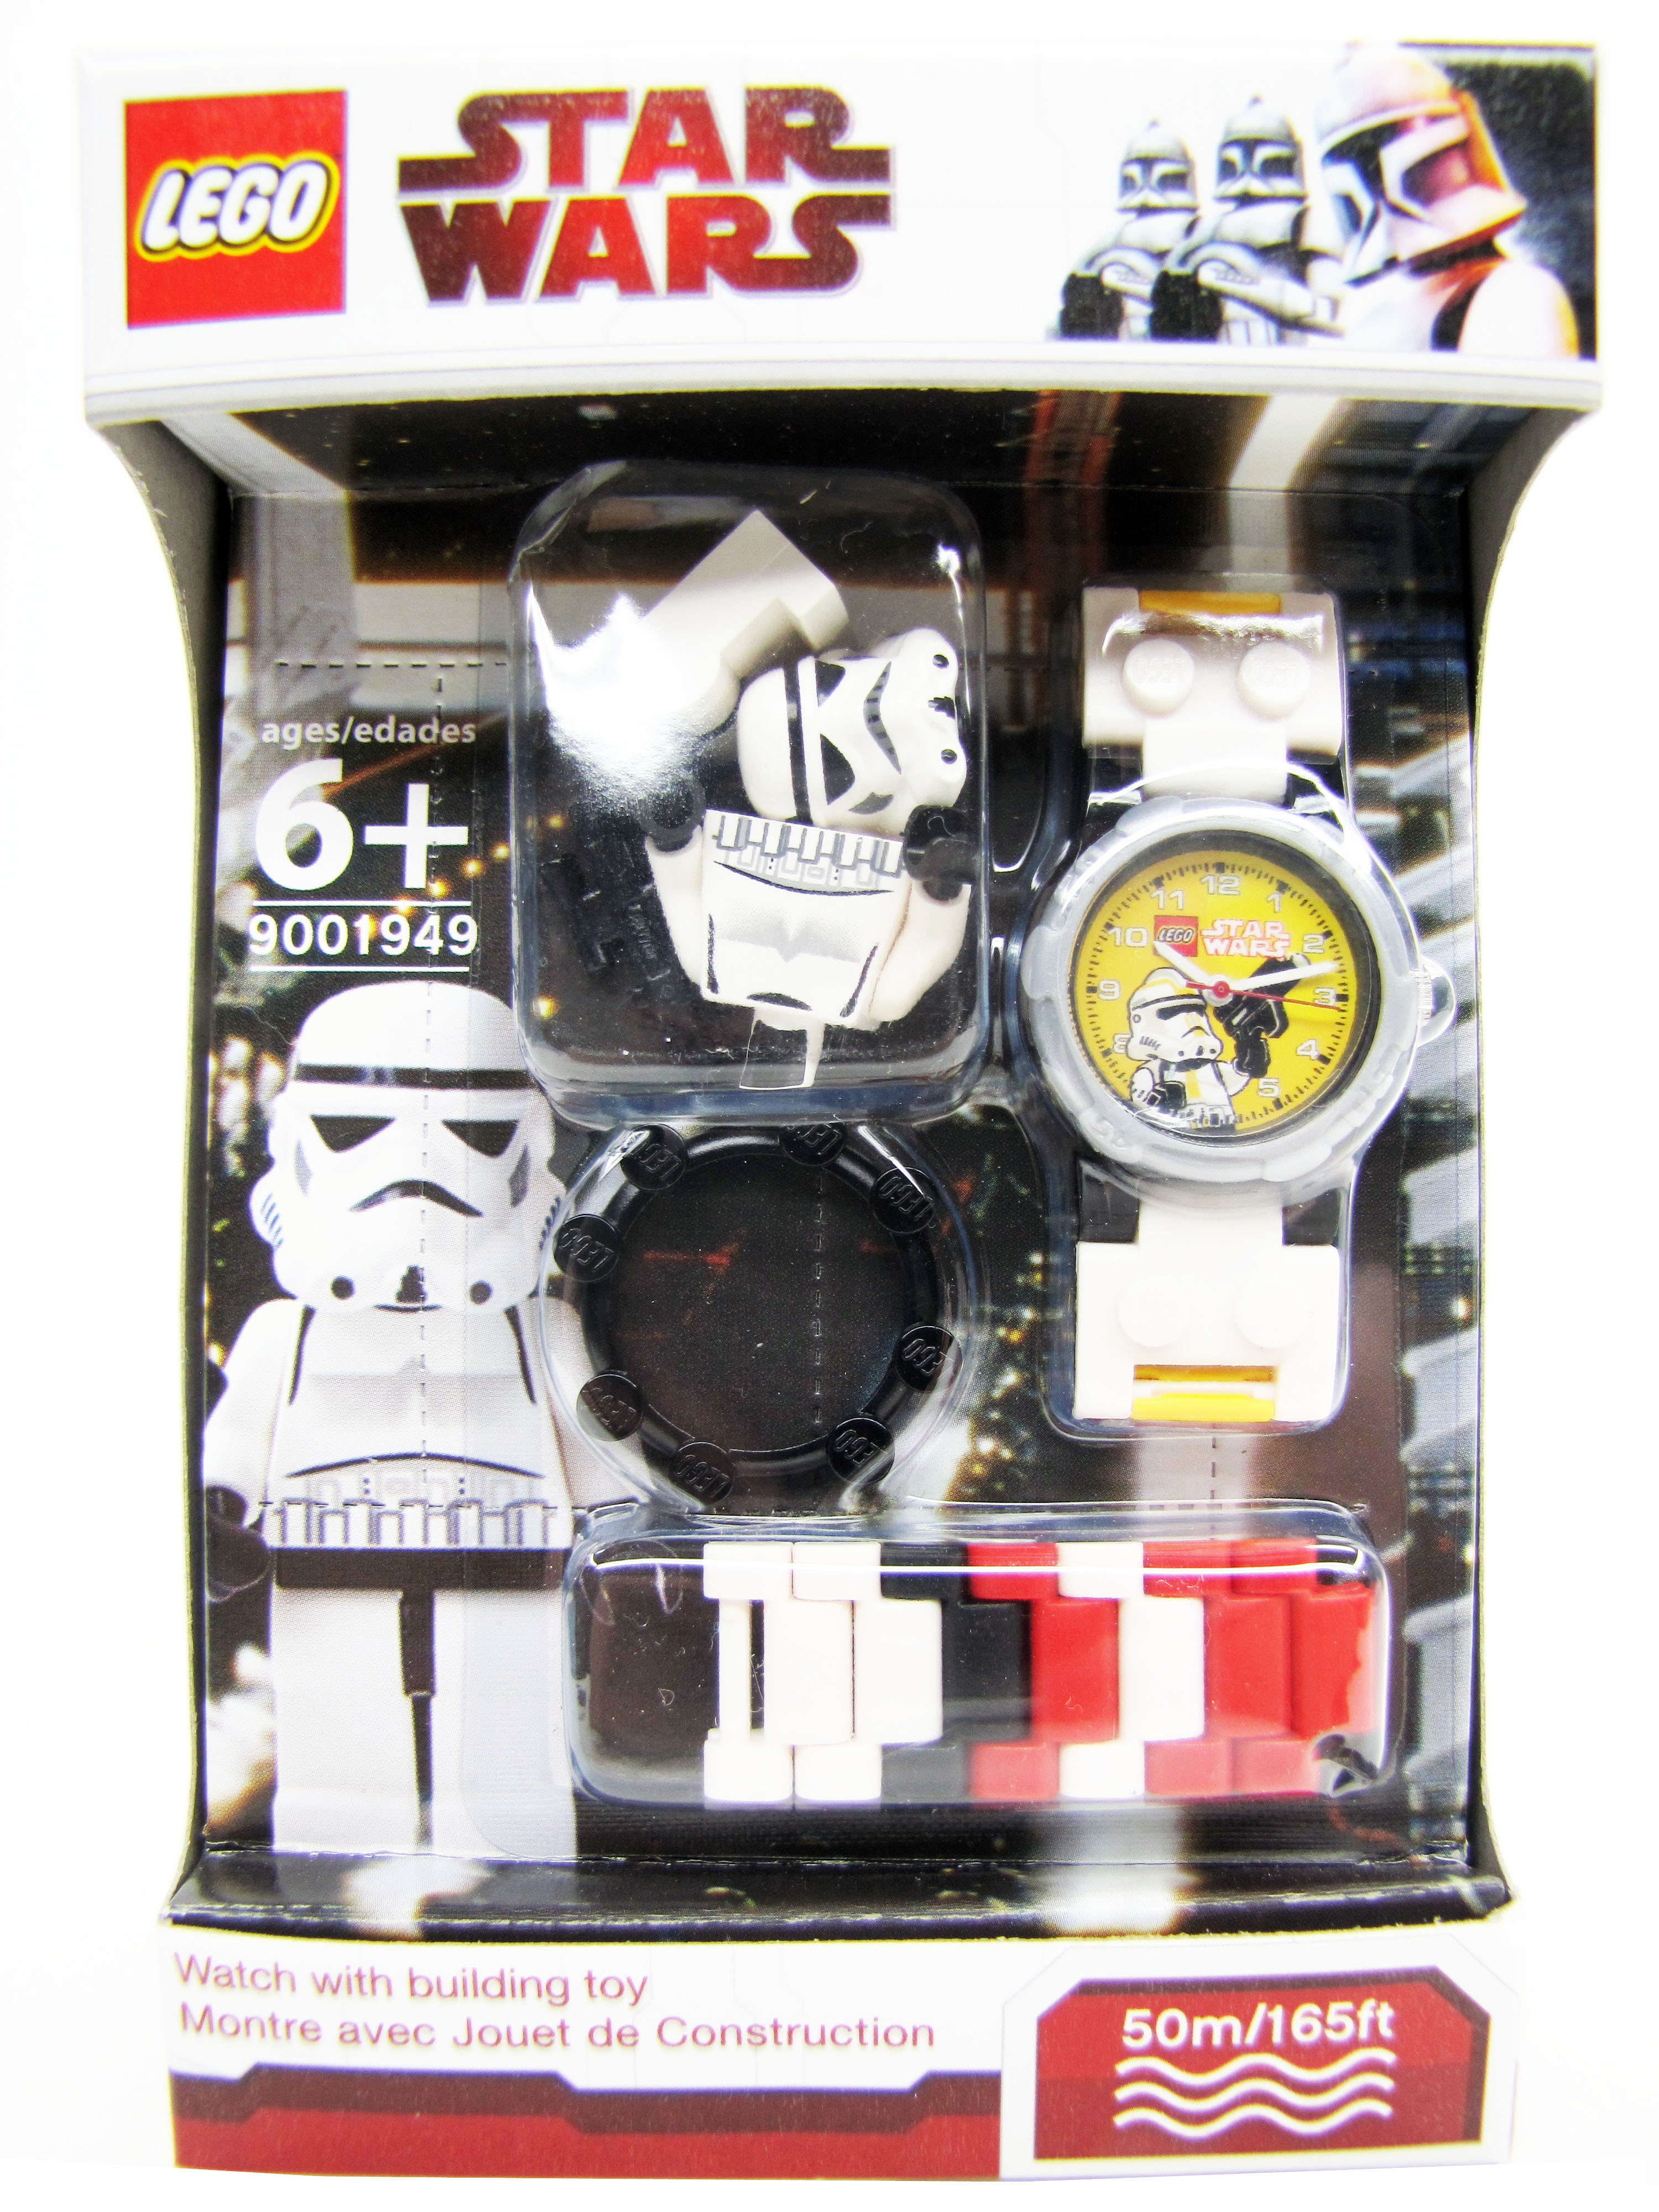 2010 Lego Star Wars Stormtrooper Minifigure Watch NEW Time 9001949